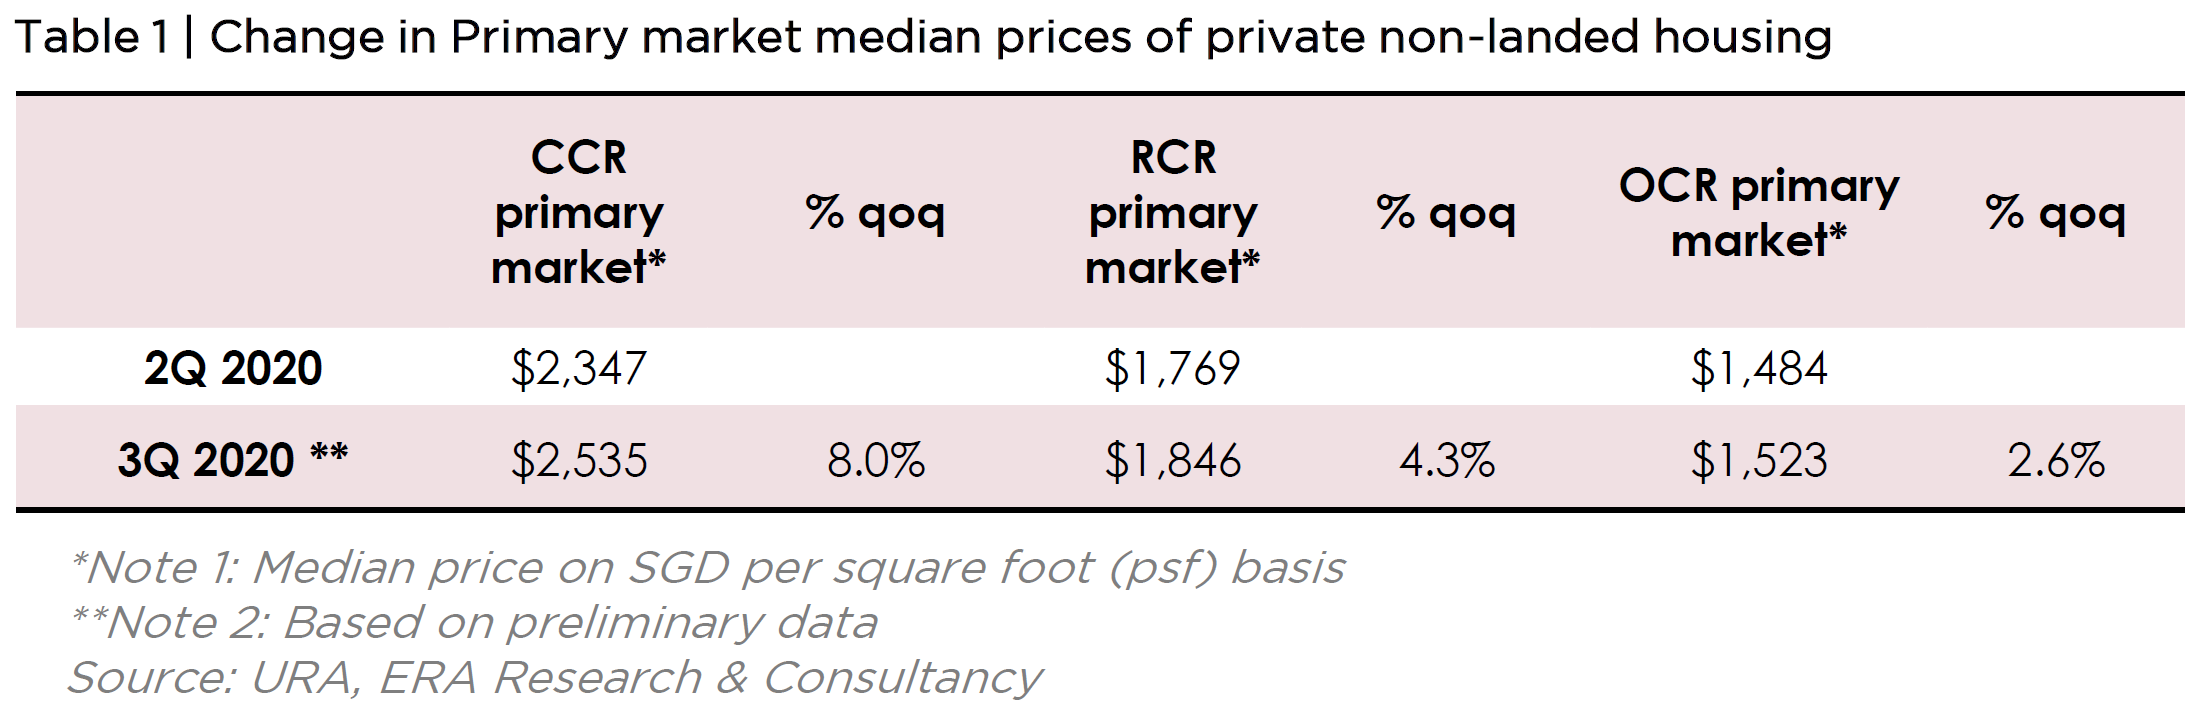 Change in Primary Market Median Prices of Private Non-Landed Housing